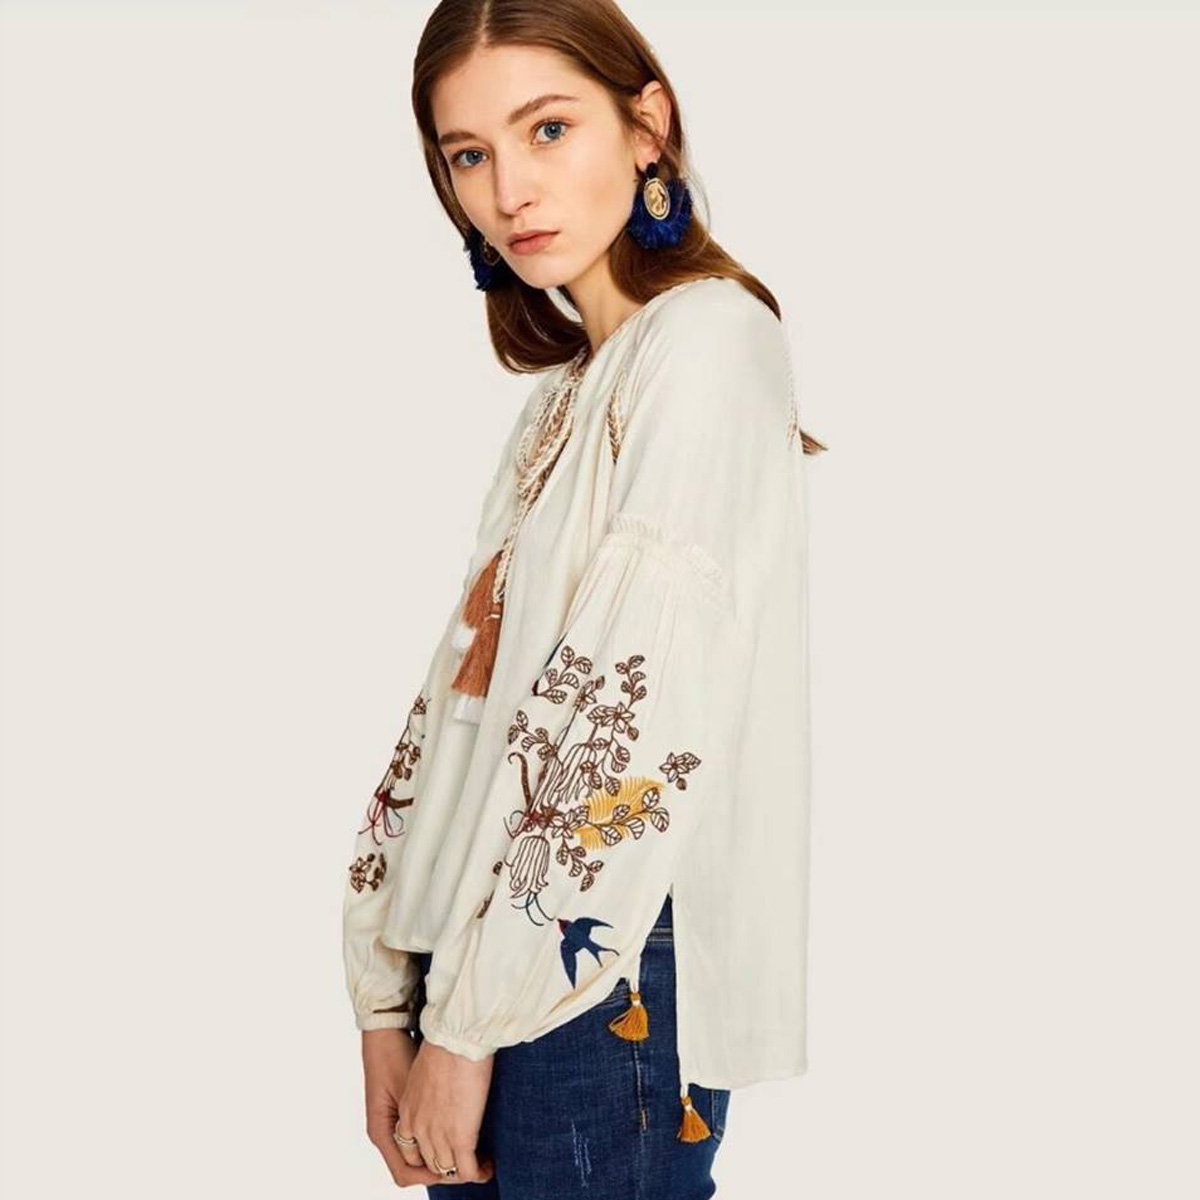 Jastie V-Neck Tassel Tie Embroidered   Blouse     Shirt   Boho Hippie Loose Casual Top Long Lantern Sleeve Autumn   Shirts   Top Blusa 2018